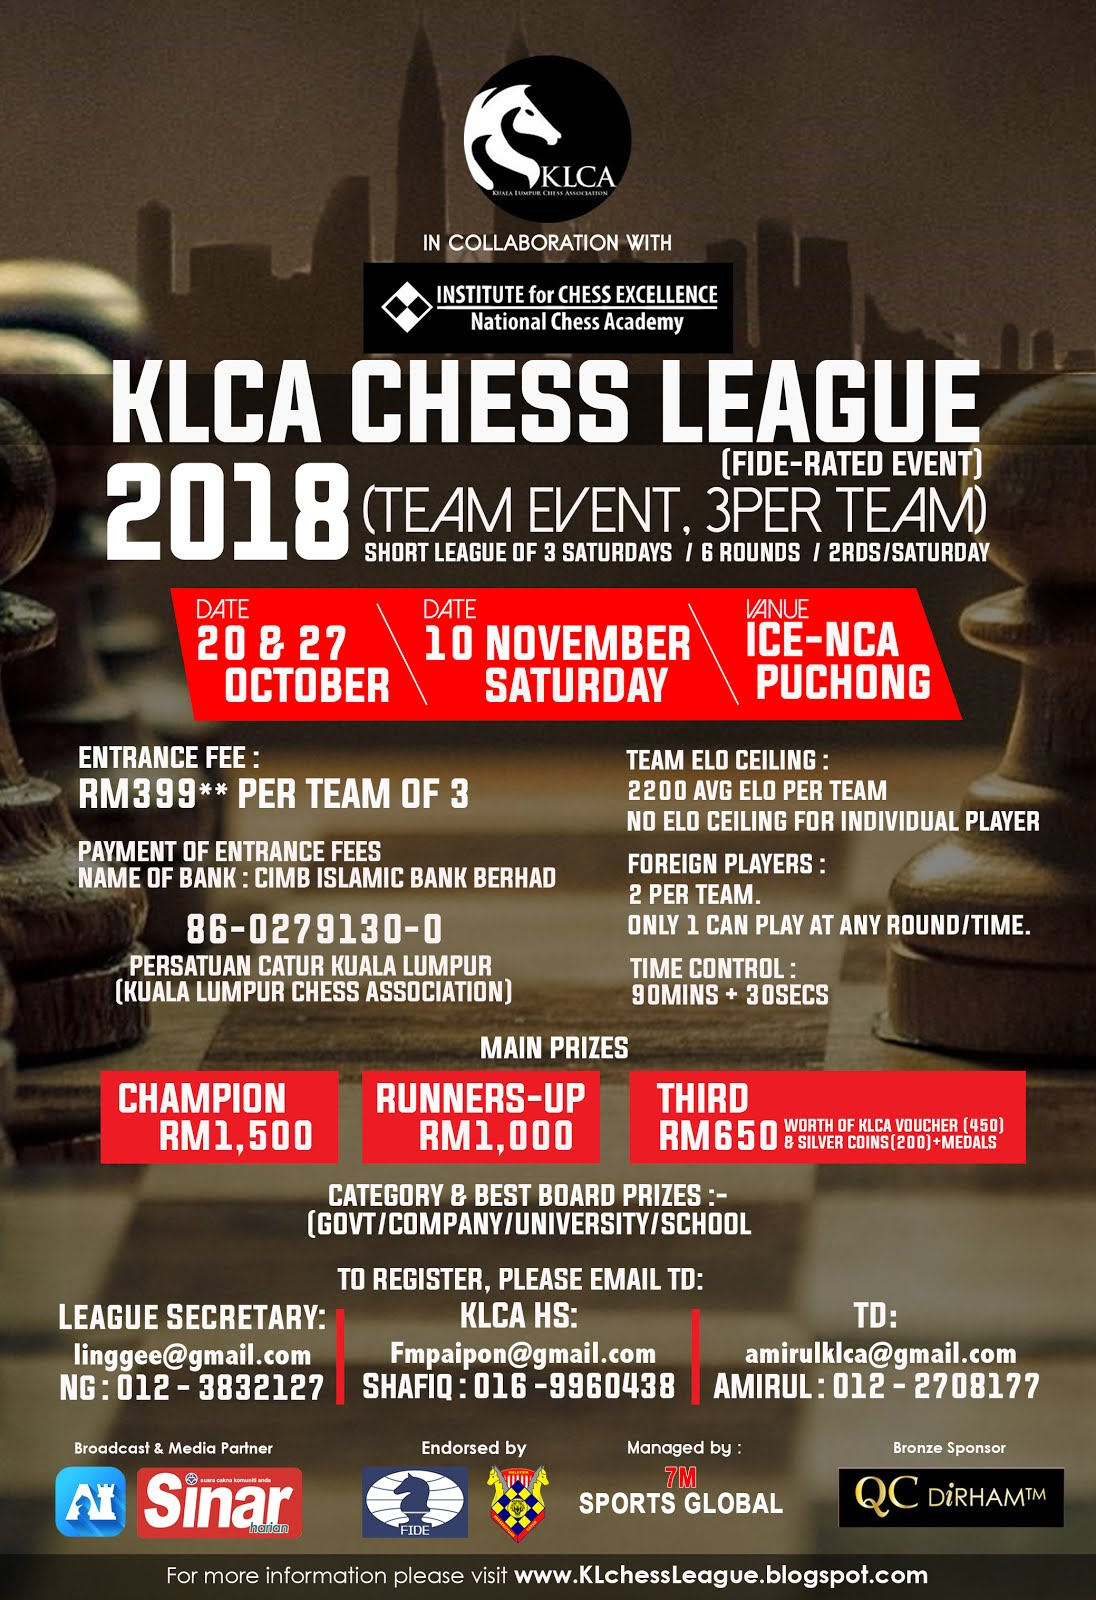 2018 KLCA CHESS LEAGUE